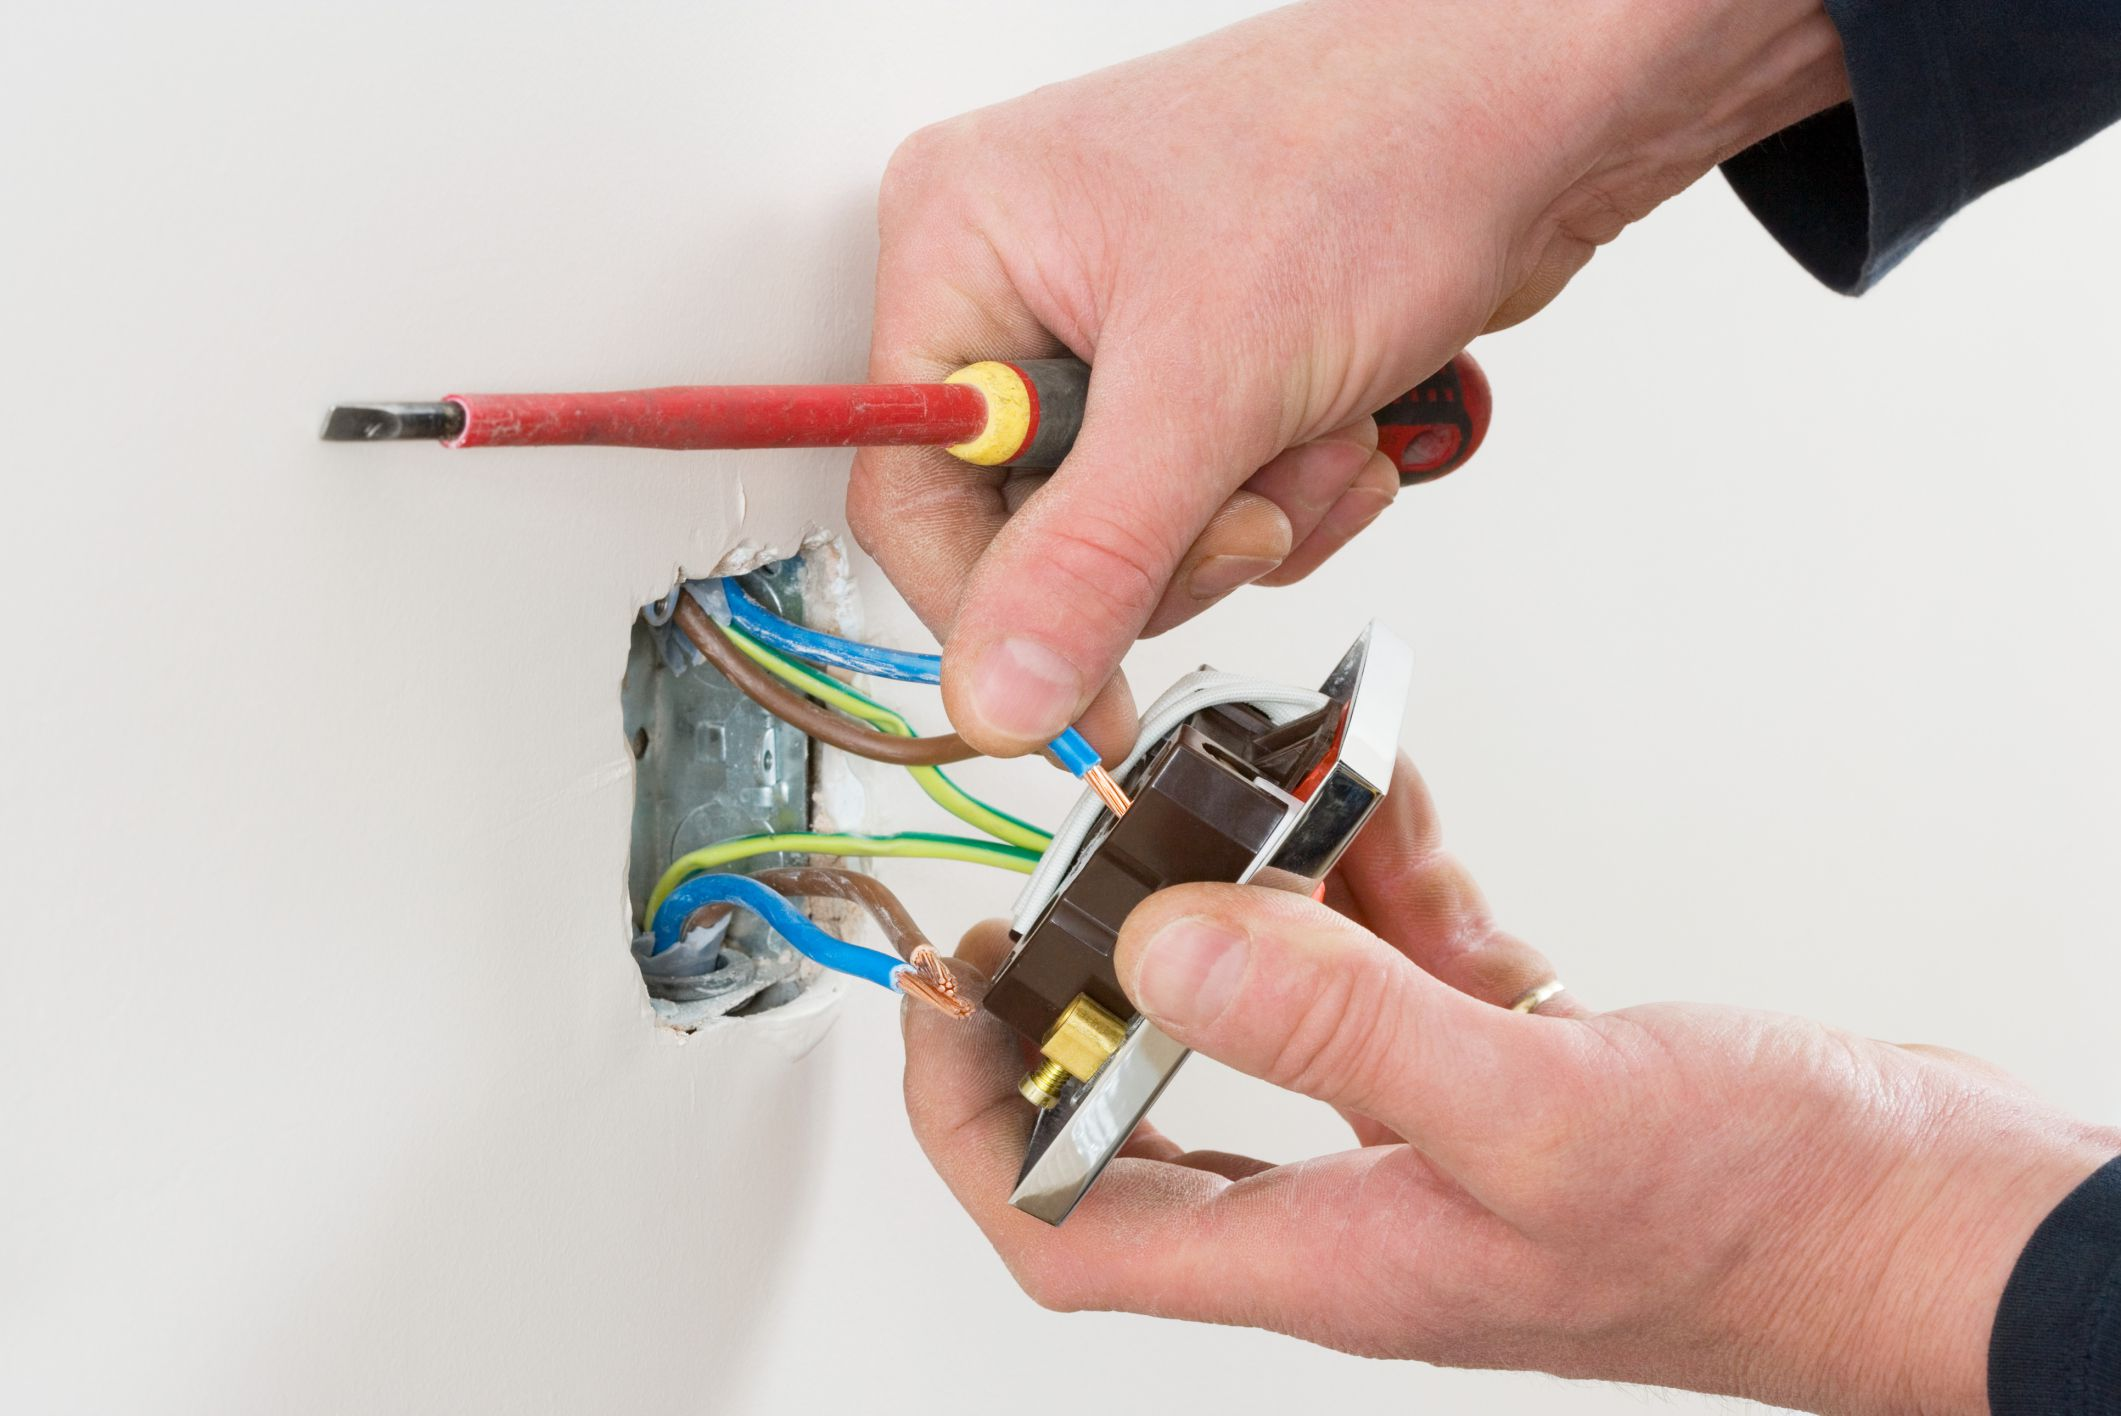 How To Fix Common Electrical Outlet Problems By Yourself Series Wiring For Homes